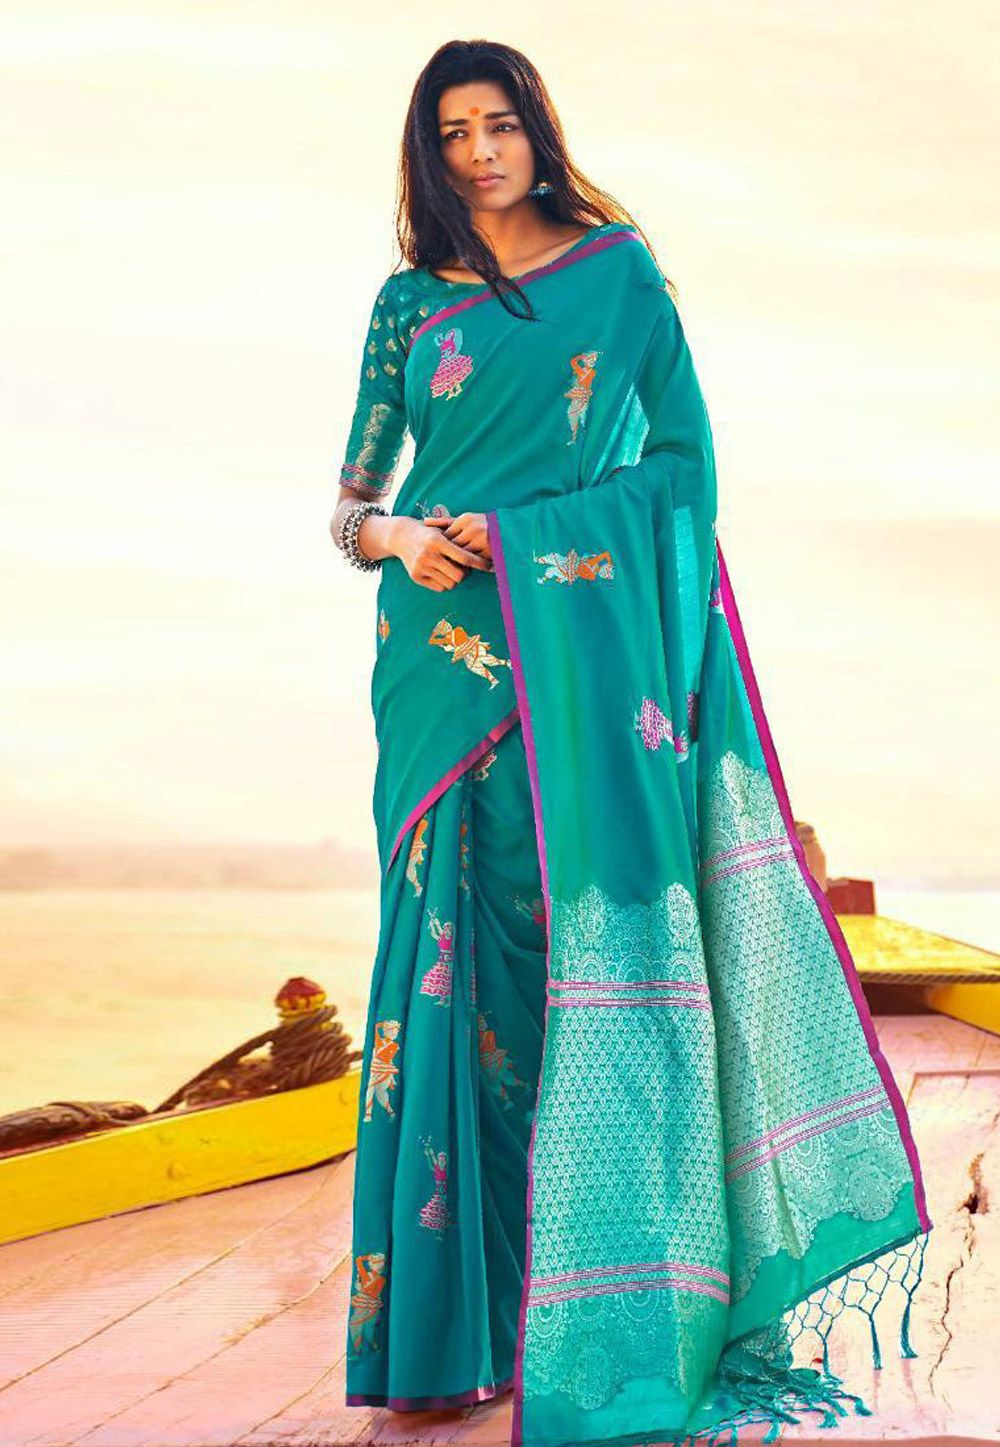 b460157739e59 Buy Turquoise Silk Saree With Blouse 157382 with blouse online at lowest  price from vast collection